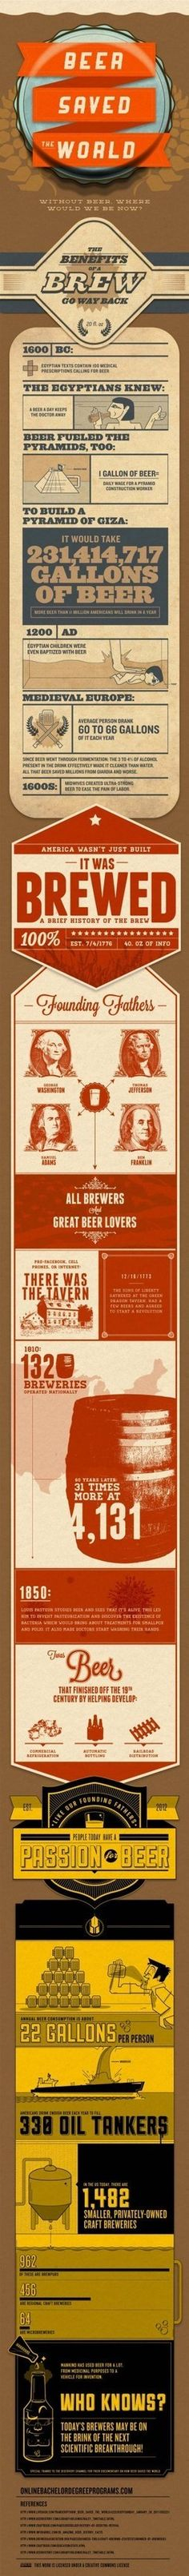 [INFOGRAPHIC] #Beer Saved The World